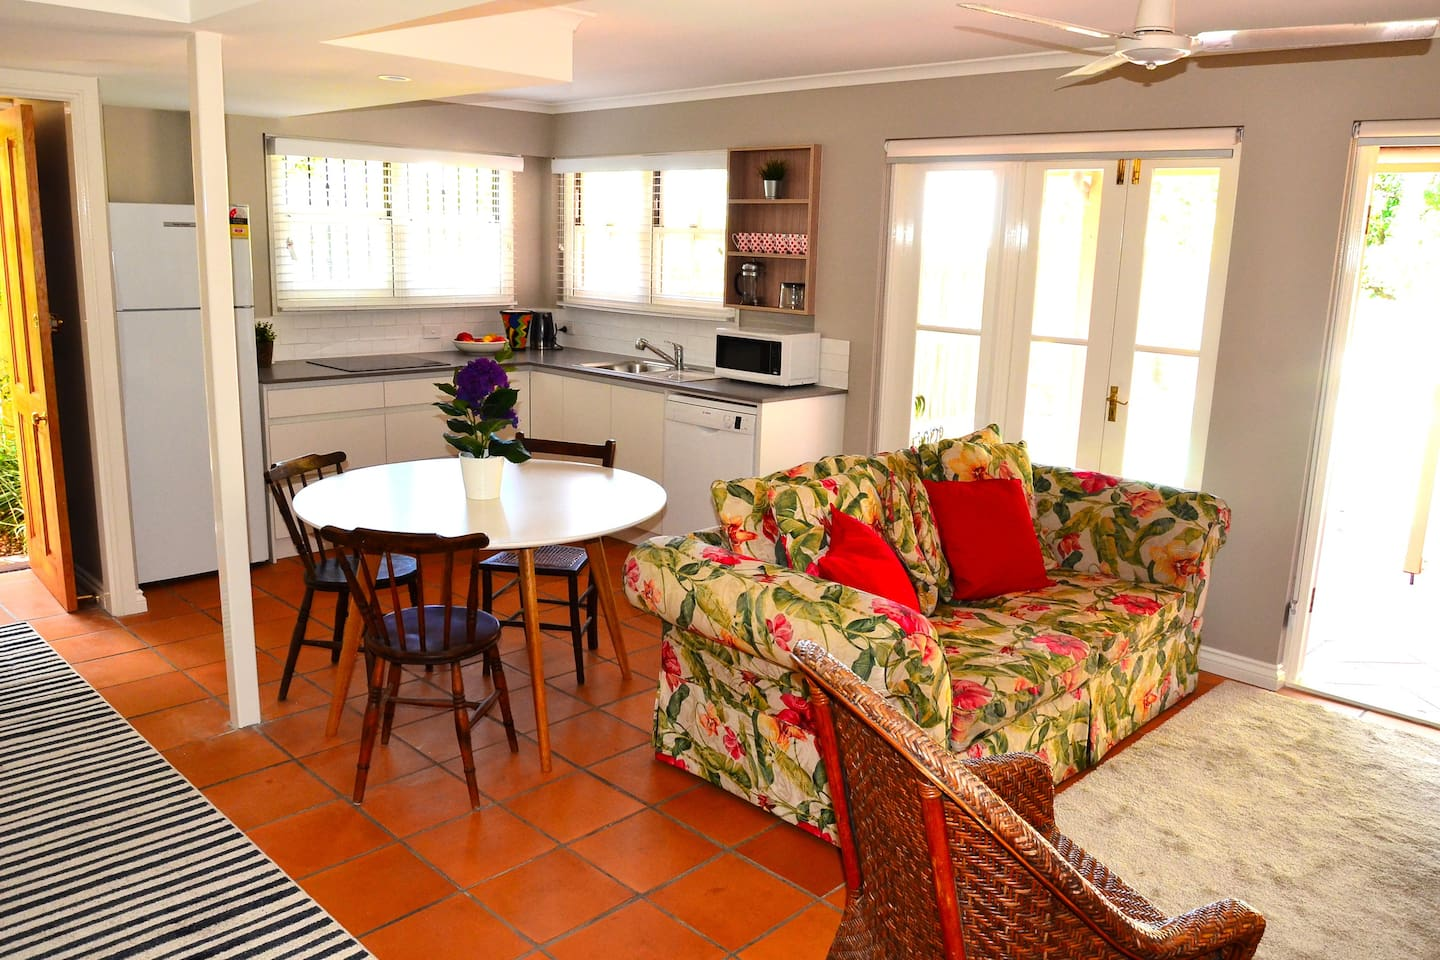 Spacious living, dining and brand new kitchen and bathroom, in self contained private apartment